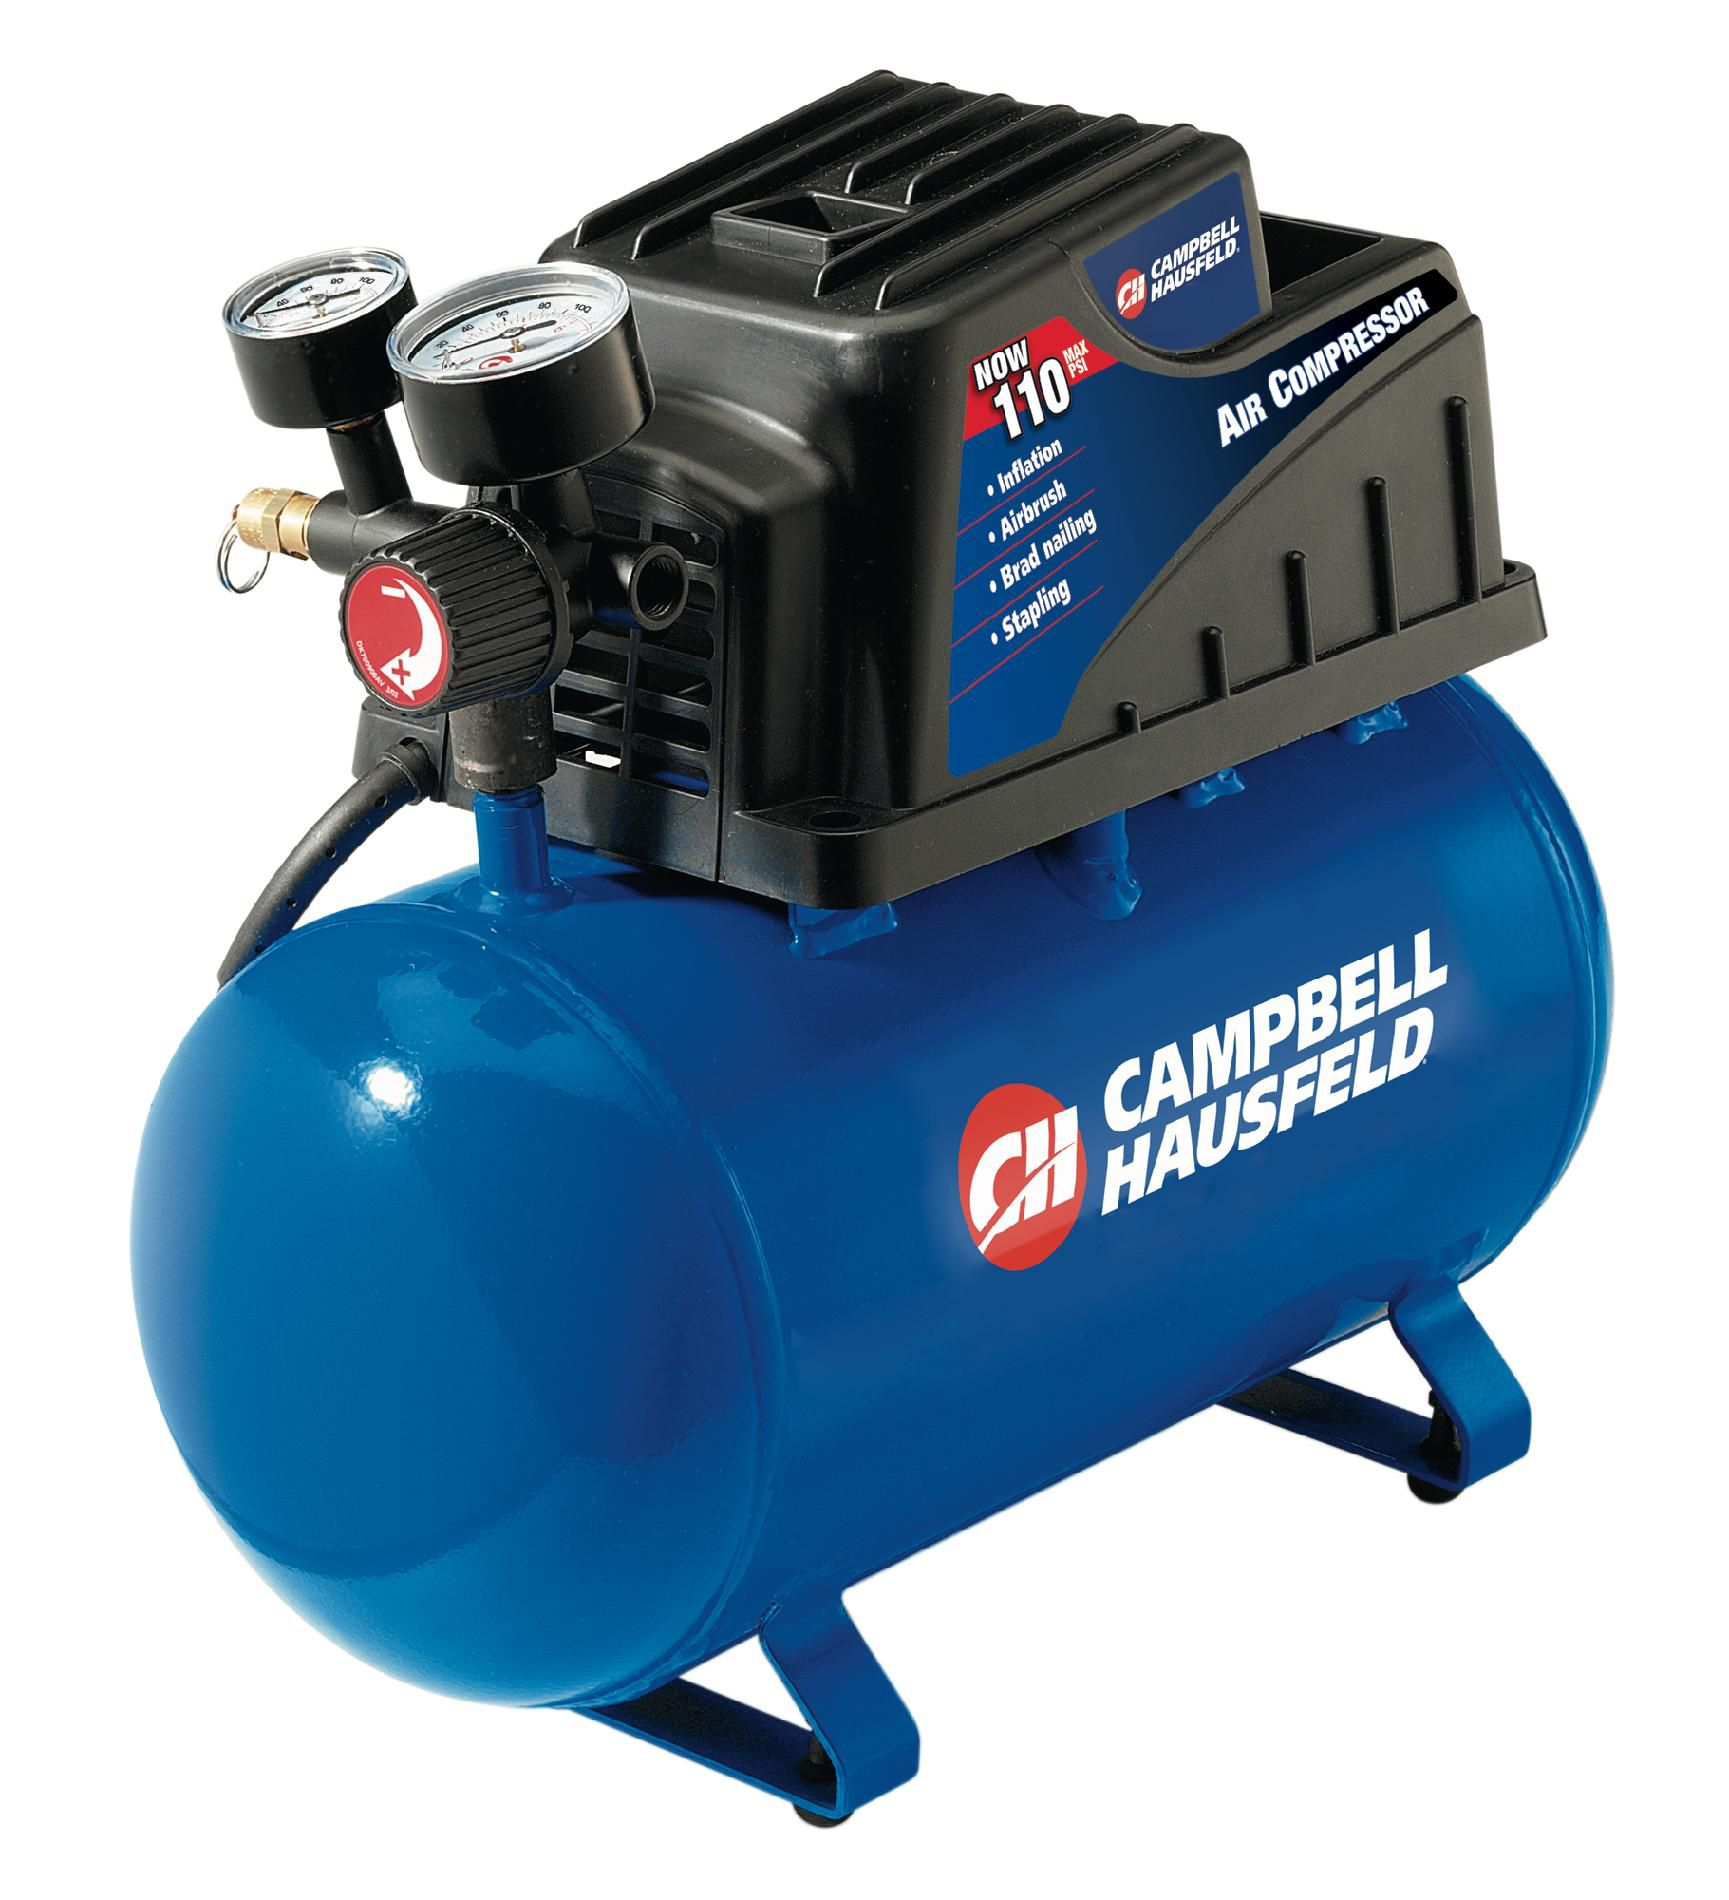 Campbell Hausfeld 2 Gallon Air Compressor with Accessories